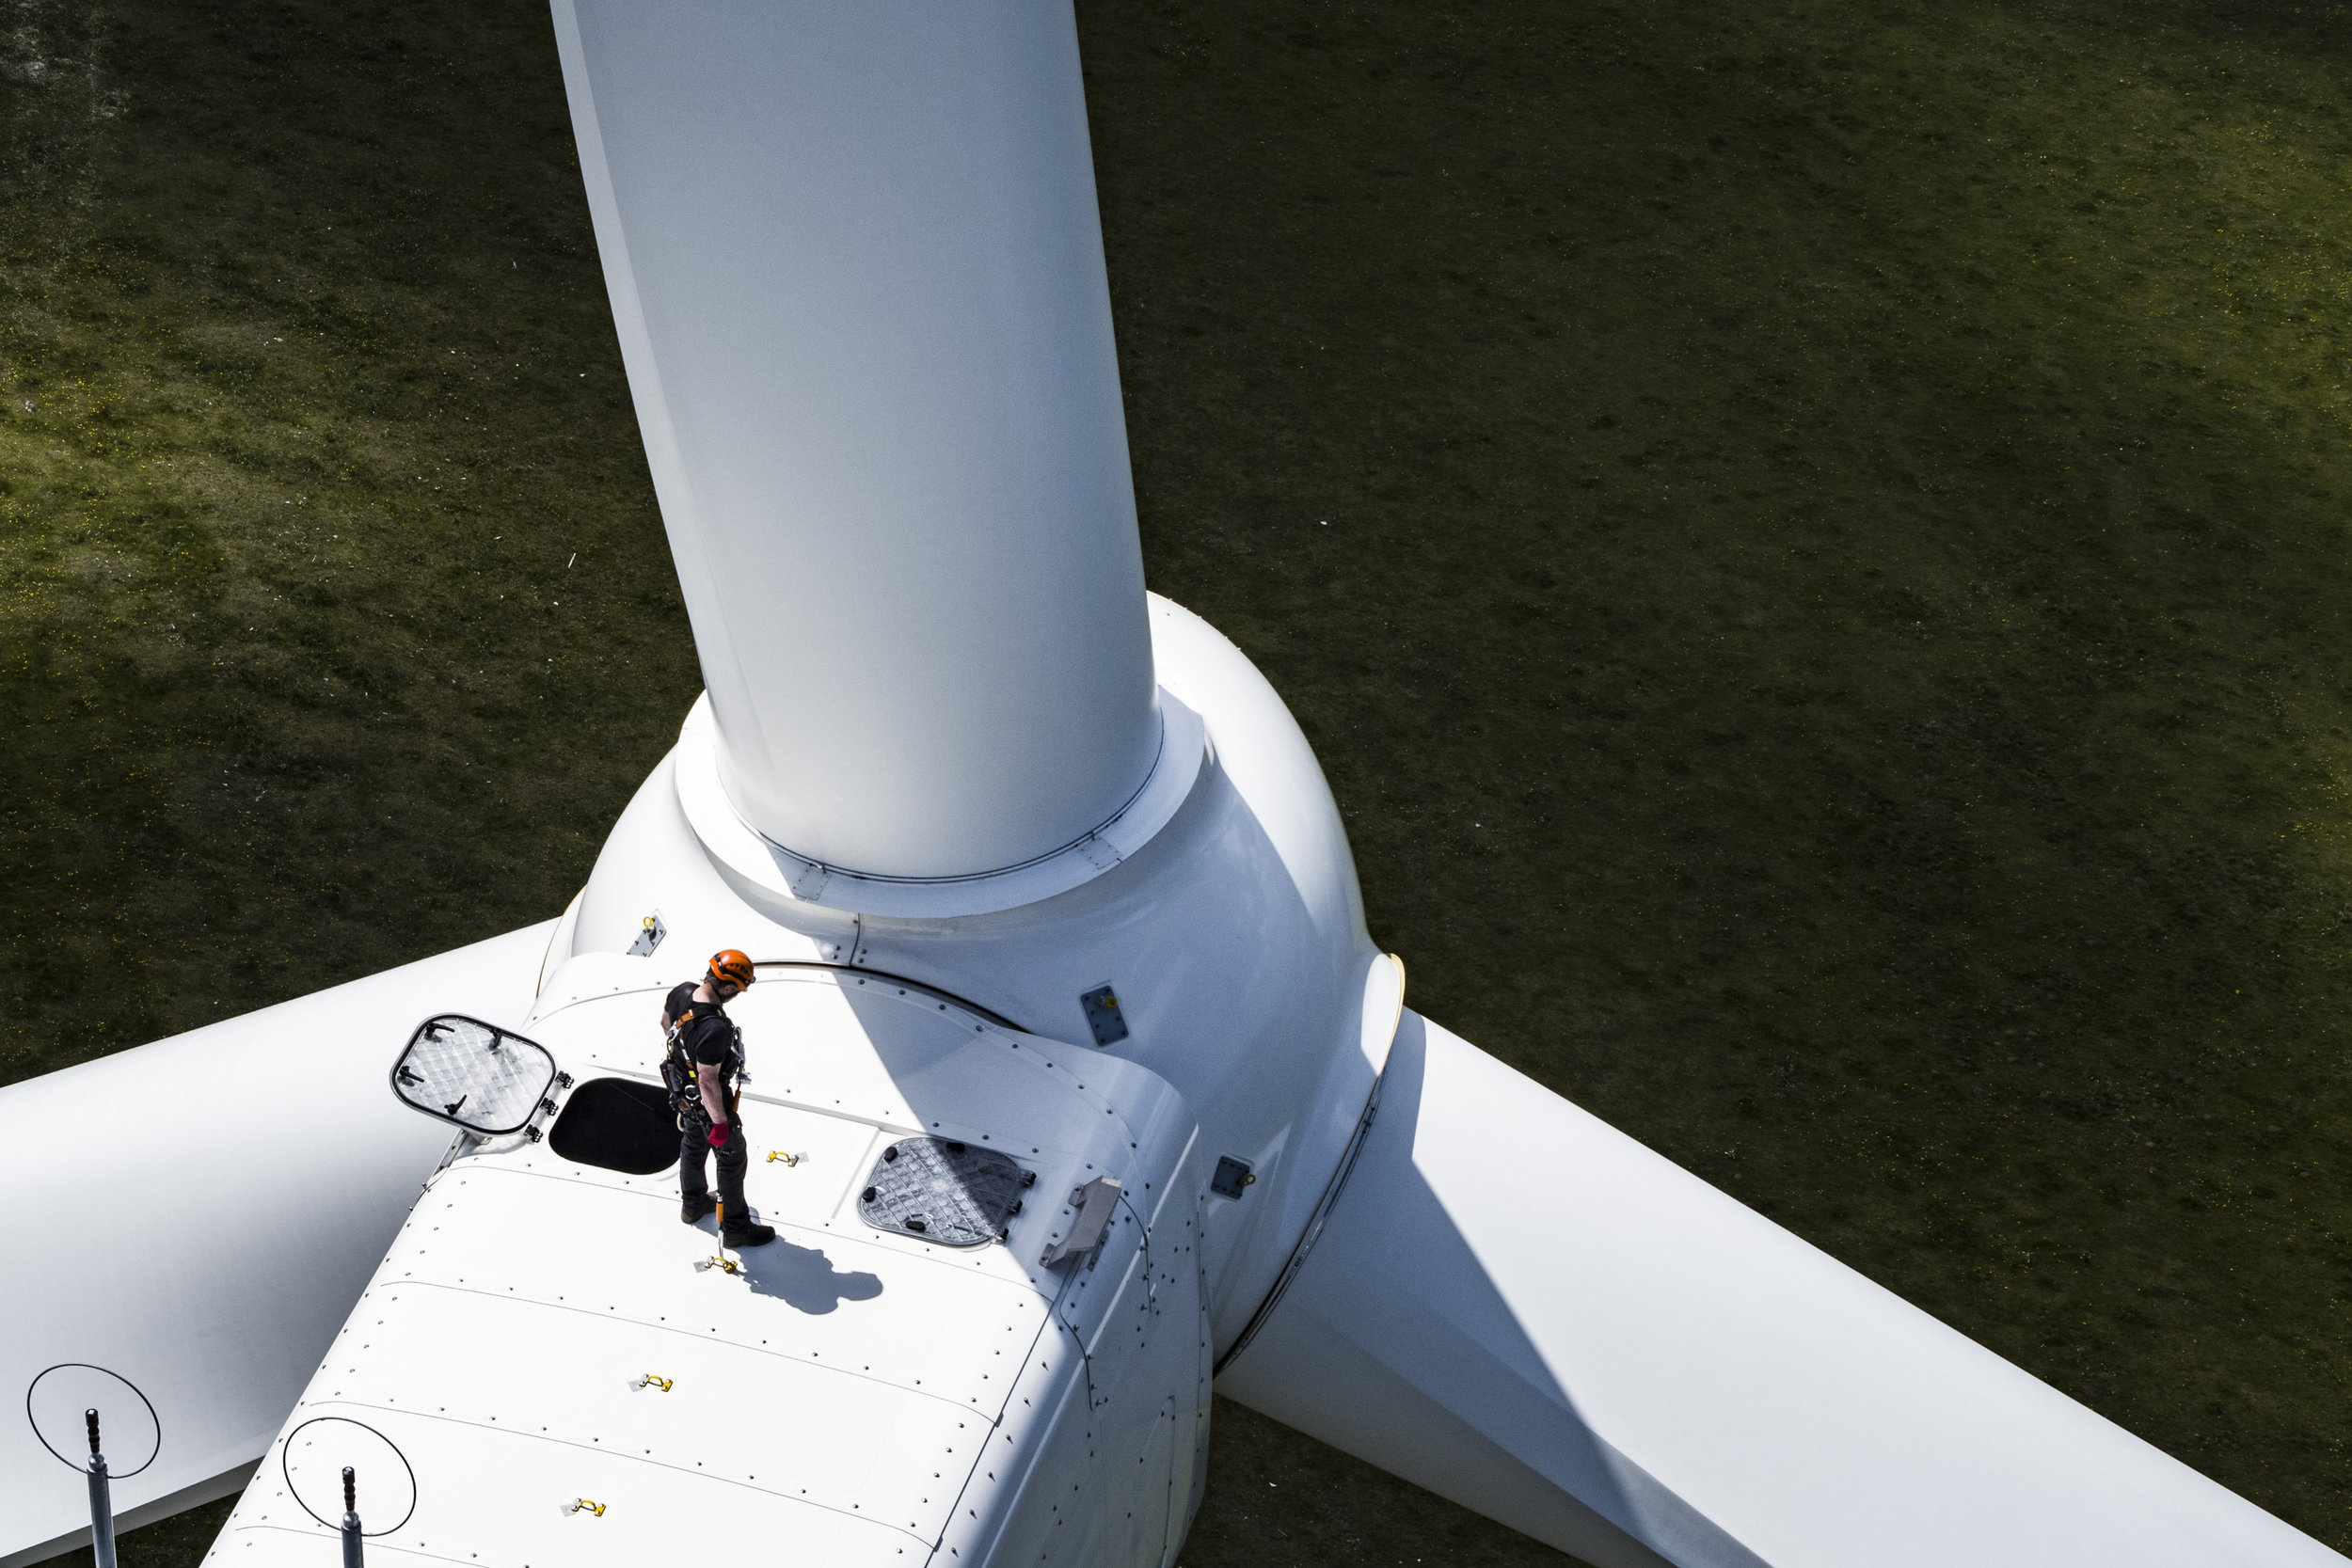 """Pierre Berger, JUVENT employee in charge of security and maintenance stand on a wind turbine of 150m overall height at the JUVENT power plant on the Mont-Soleil in Saint-Imier, Switzerland on Wednesday May 10, 2017. The Swiss people will be voting on the """"federal law on energy"""" on May 21 2017.Pierre Berger, employe de JUVENT en charge de la securite et maintenance est photographie debout sur une eolienne de 150m de hauteur totale ce mercredi 10 mai 2017 au Mont-Croset a Saint-Imier dans le Jura Bernois. Le 21 mai 2017 le peuple suisse va voter sur la loi federale sur l'energie (LEne). (KEYSTONE/Valentin Flauraud)"""